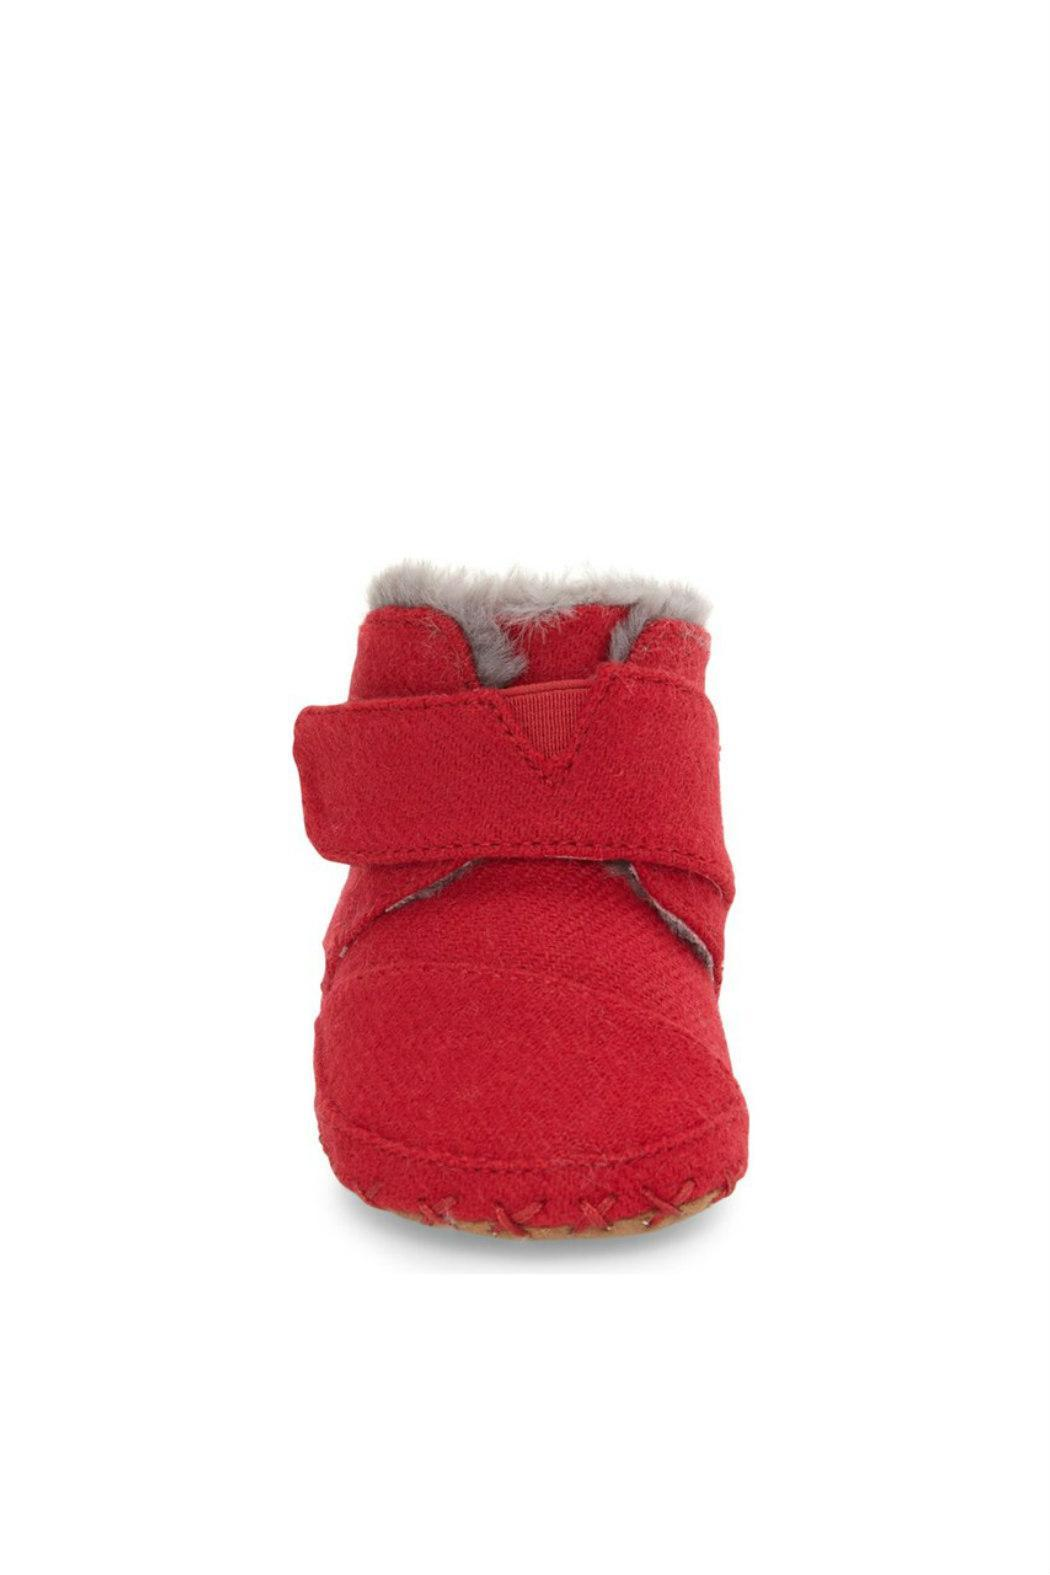 Today's top TOMS promo code: Black Friday! Back By Popular Demand! 30% Off Select Styles. Get 25 TOMS coupons and promo codes for December on RetailMeNot.